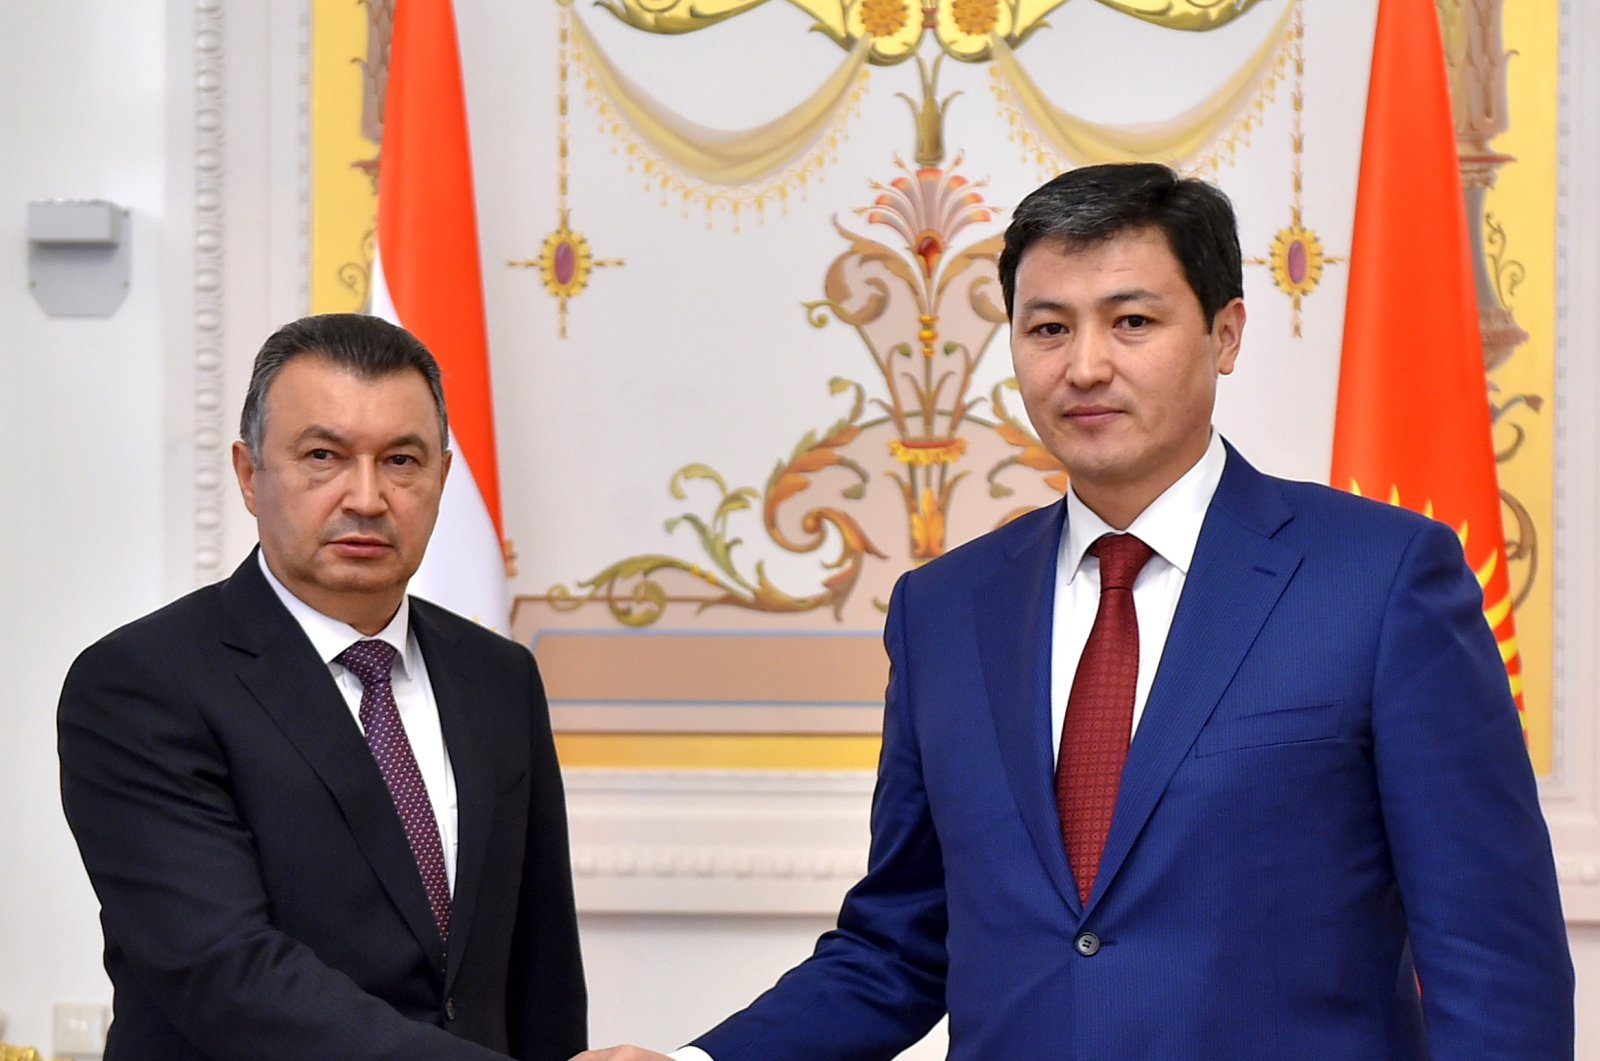 Tajik Prime Minister Kohir Rasulzoda (L) and Kyrgyz Prime Minister Ulukbek Maripov shake hands during a bilateral meeting before a session of the Eurasian Economic Union (EAEU) Intergovernmental Council in Kazan, Russia, April 29, 2021. (EPA Photo)